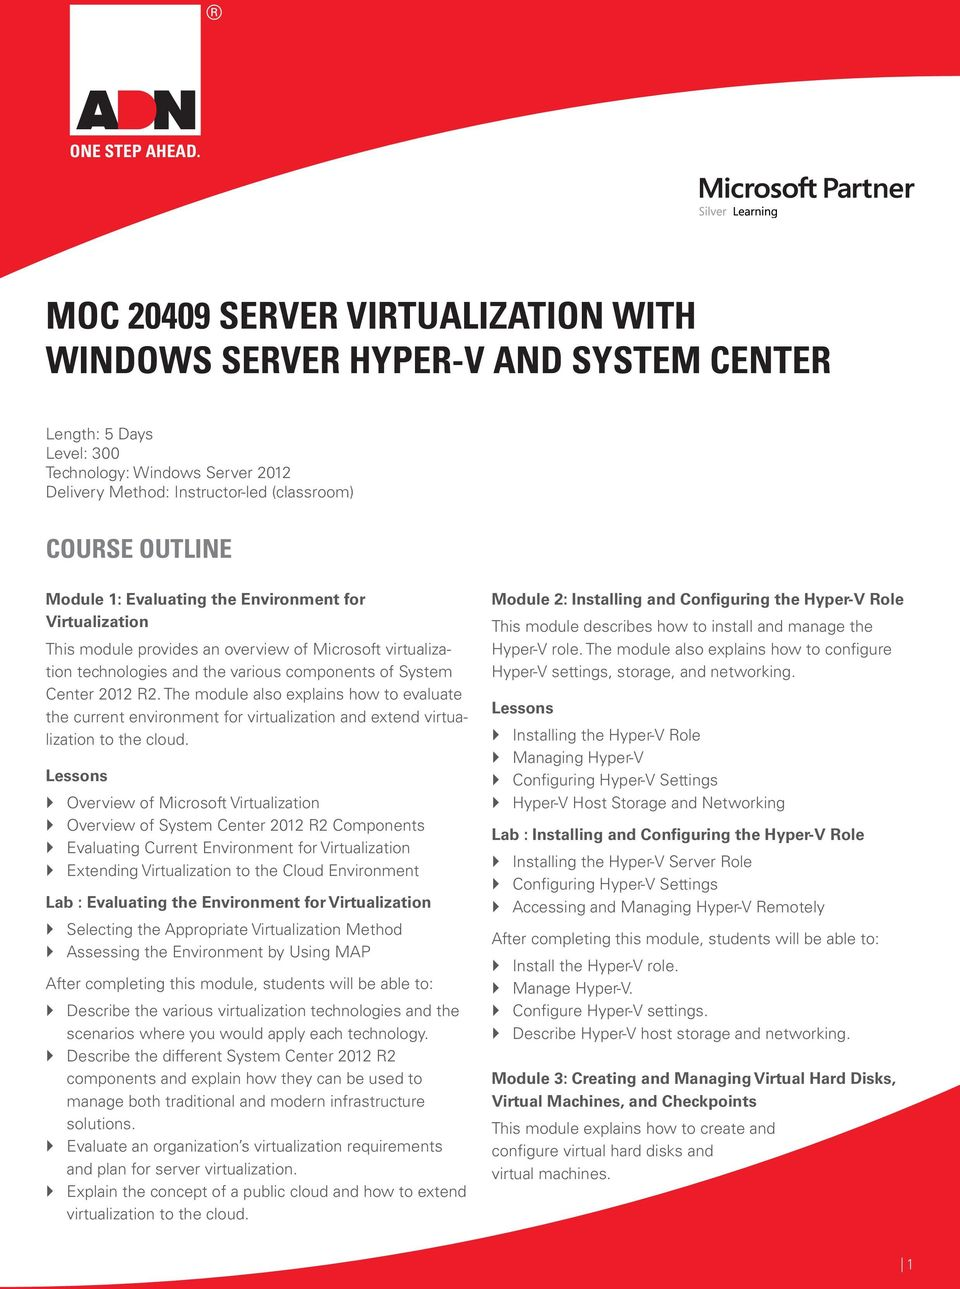 Module 1: Evaluating the Environment for This module provides an overview of Microsoft virtualization technologies and the various components of System Center 2012 R2.